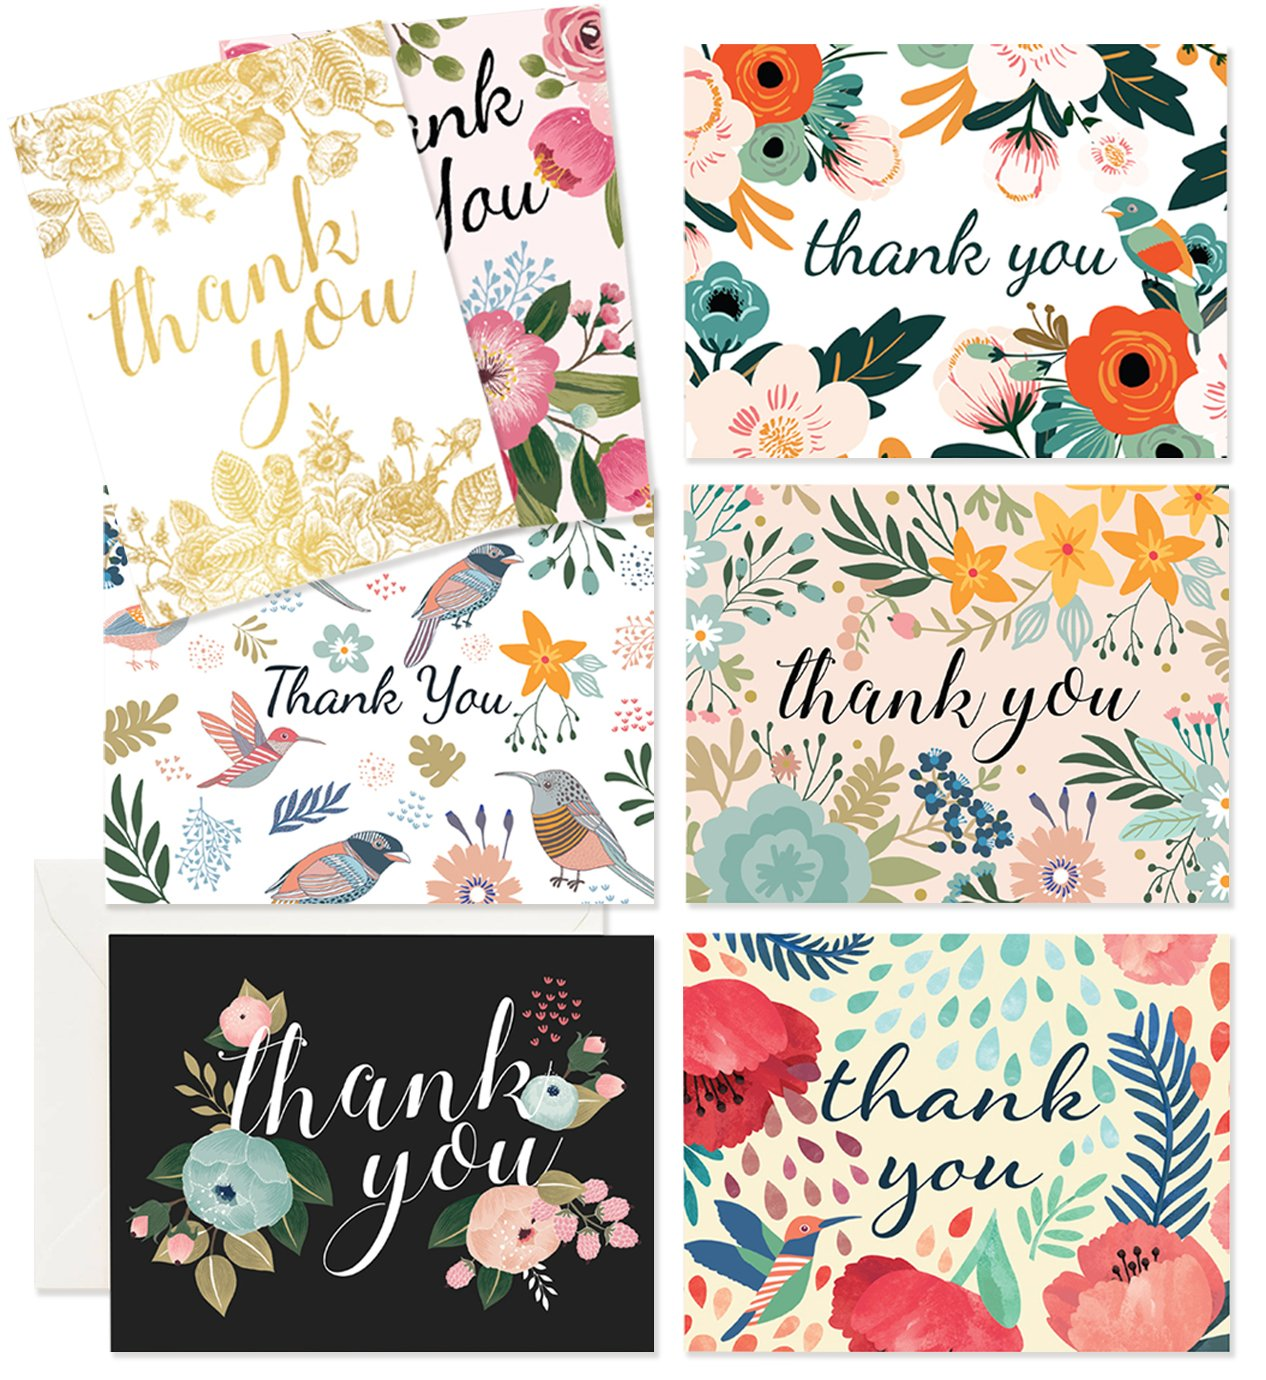 Amazon thank you cards 37 beautiful thank you card blank amazon thank you cards 37 beautiful thank you card blank cards white envelopes included bridal baby showers and business 37 pack bonus 24k izmirmasajfo